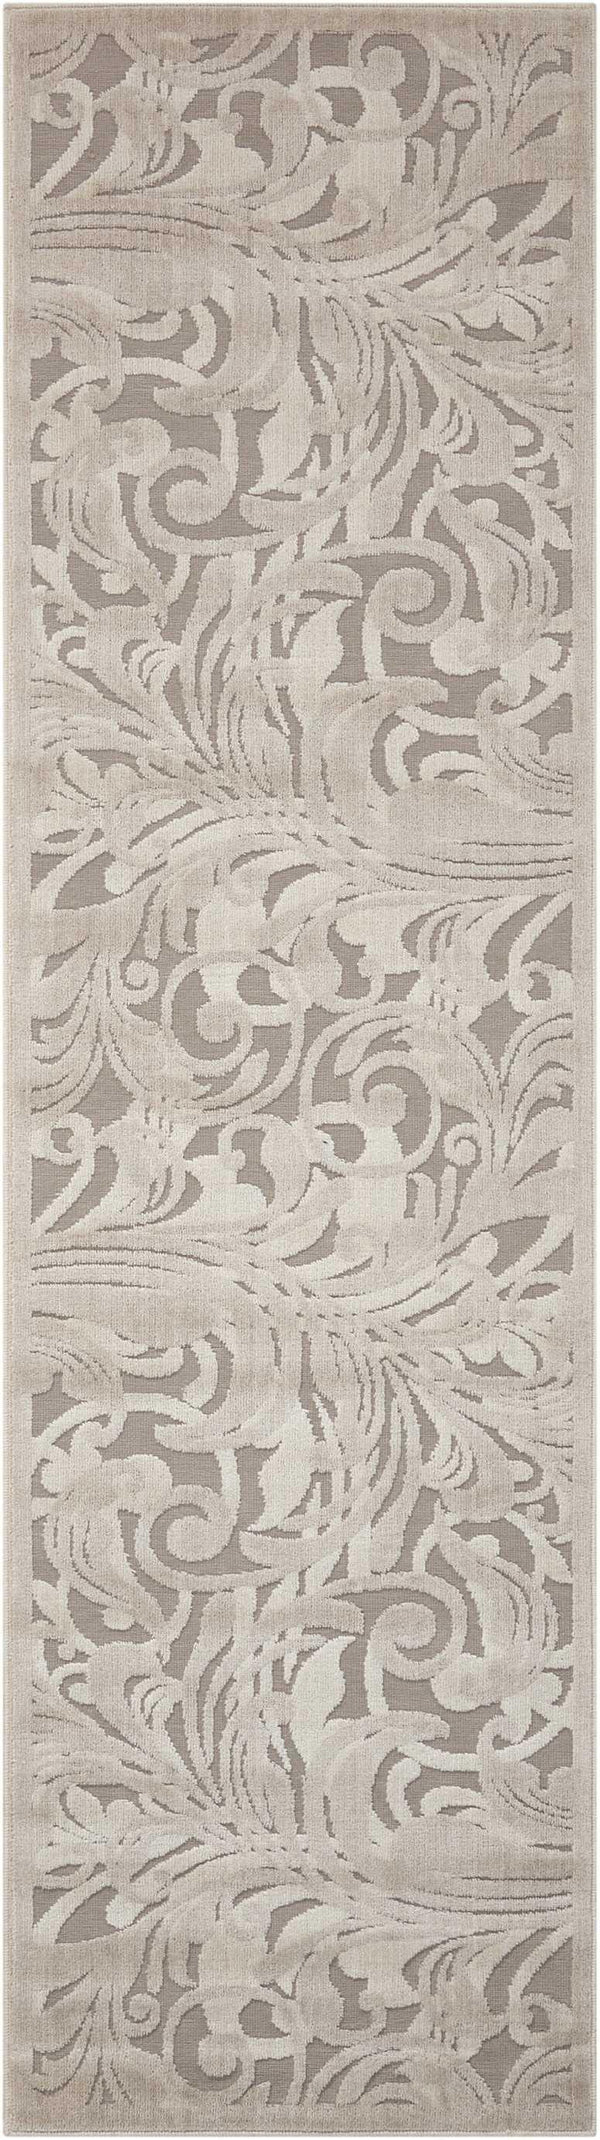 Nourison GRAPHIC ILLUSIONS GIL01 GRY/CAMEL Area Rug